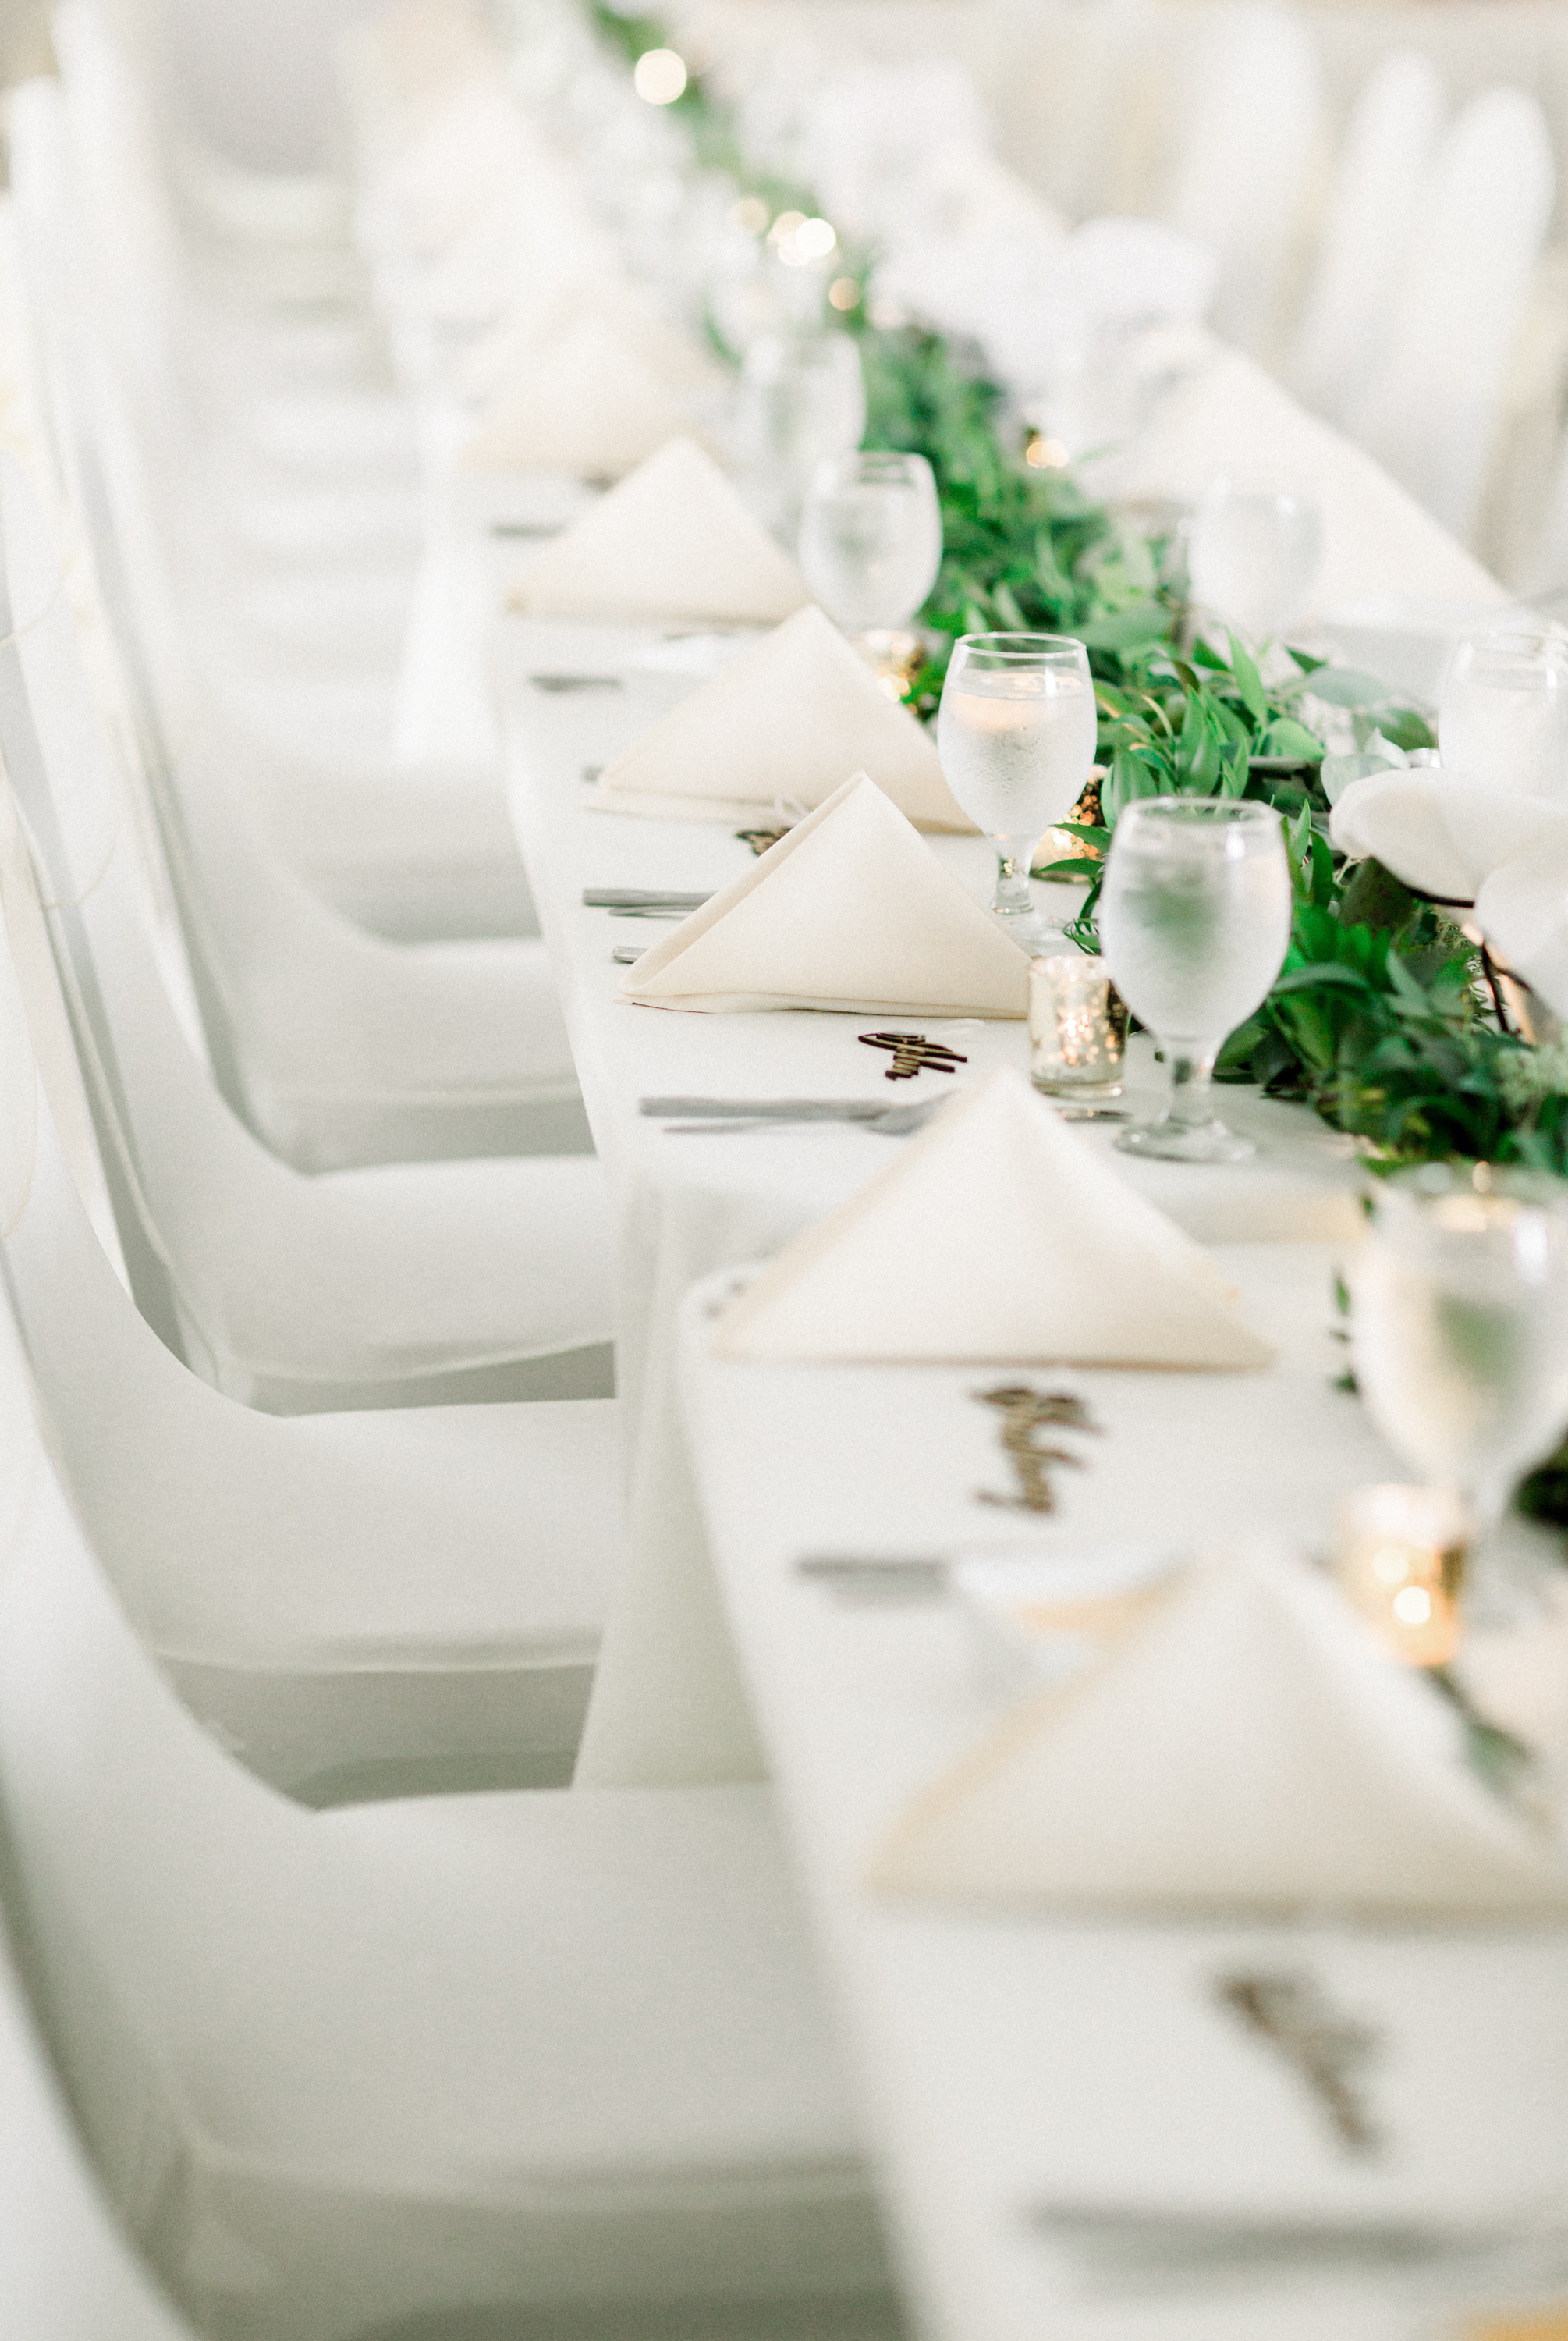 Wedding table decor with greenery table runner and lazer-cut escort cards for Pittsburgh wedding planned by Exhale Events. Find more wedding inspiration at exhale-events.com!